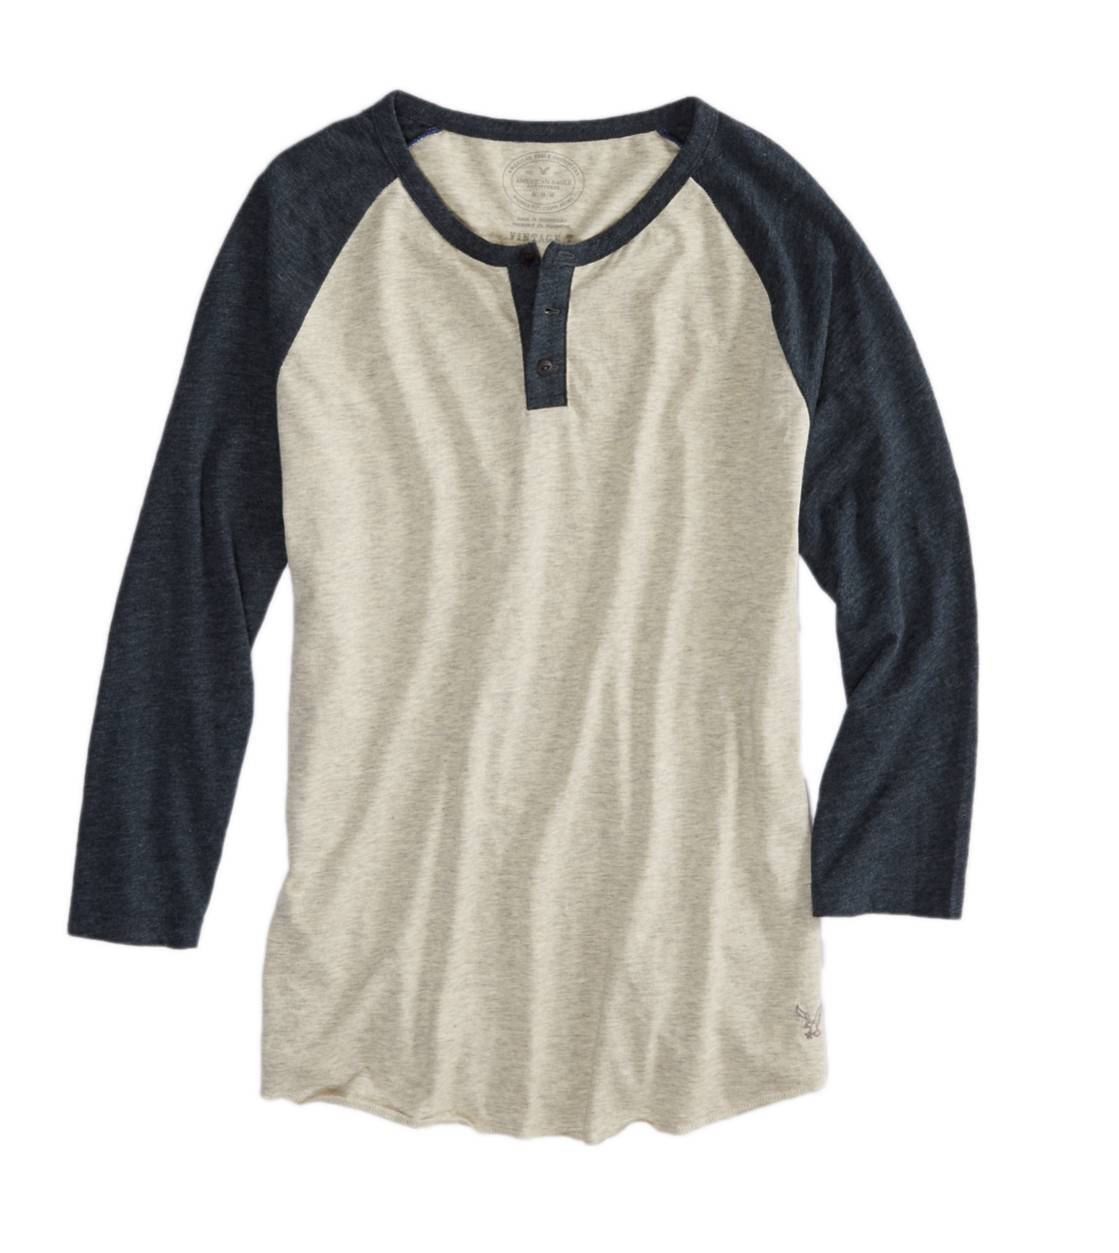 Oatmeal Heather AE Baseball Henley